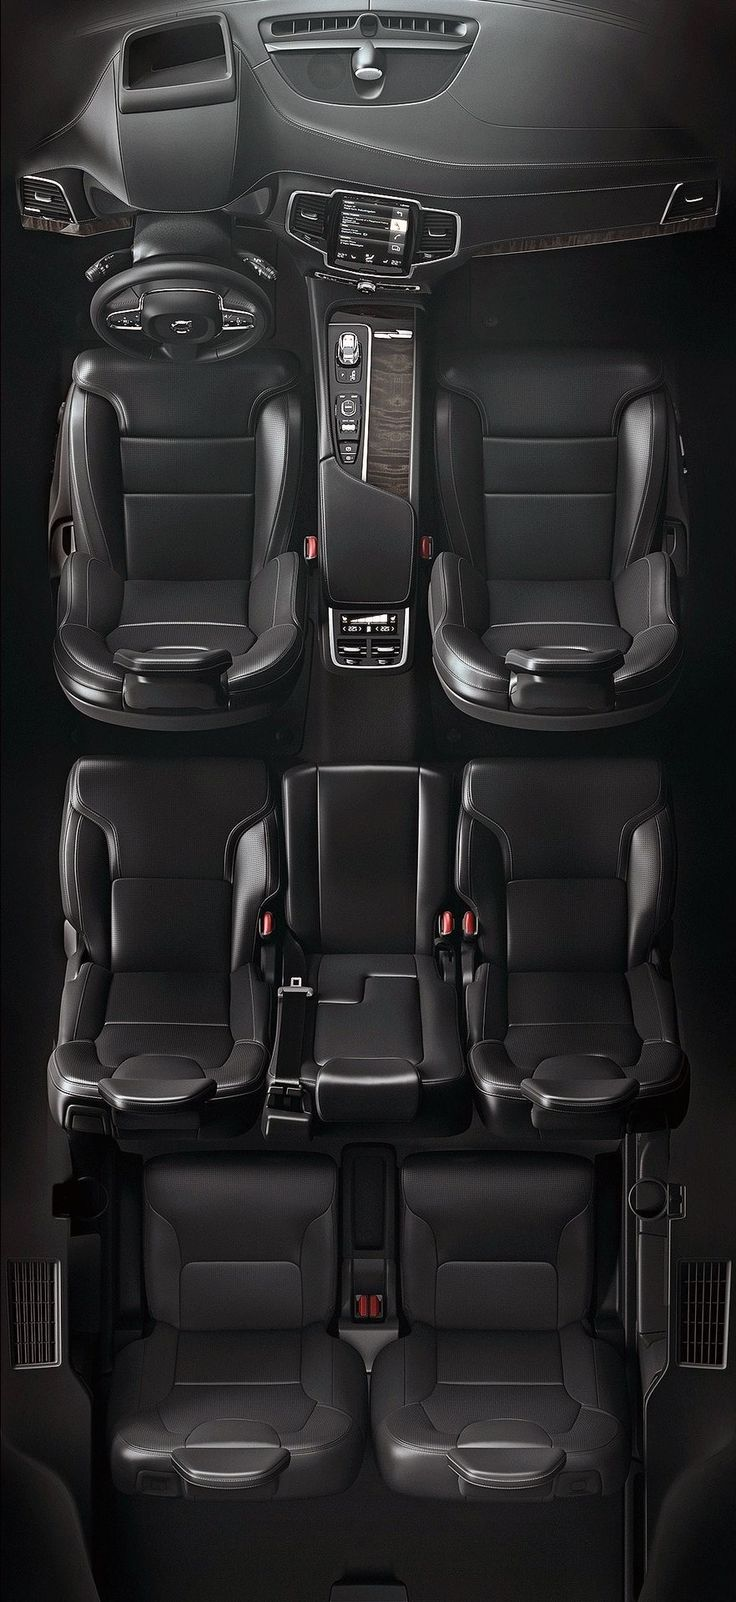 Volvo XC90 interior. Baby three = new vroom vroom to fit everyone